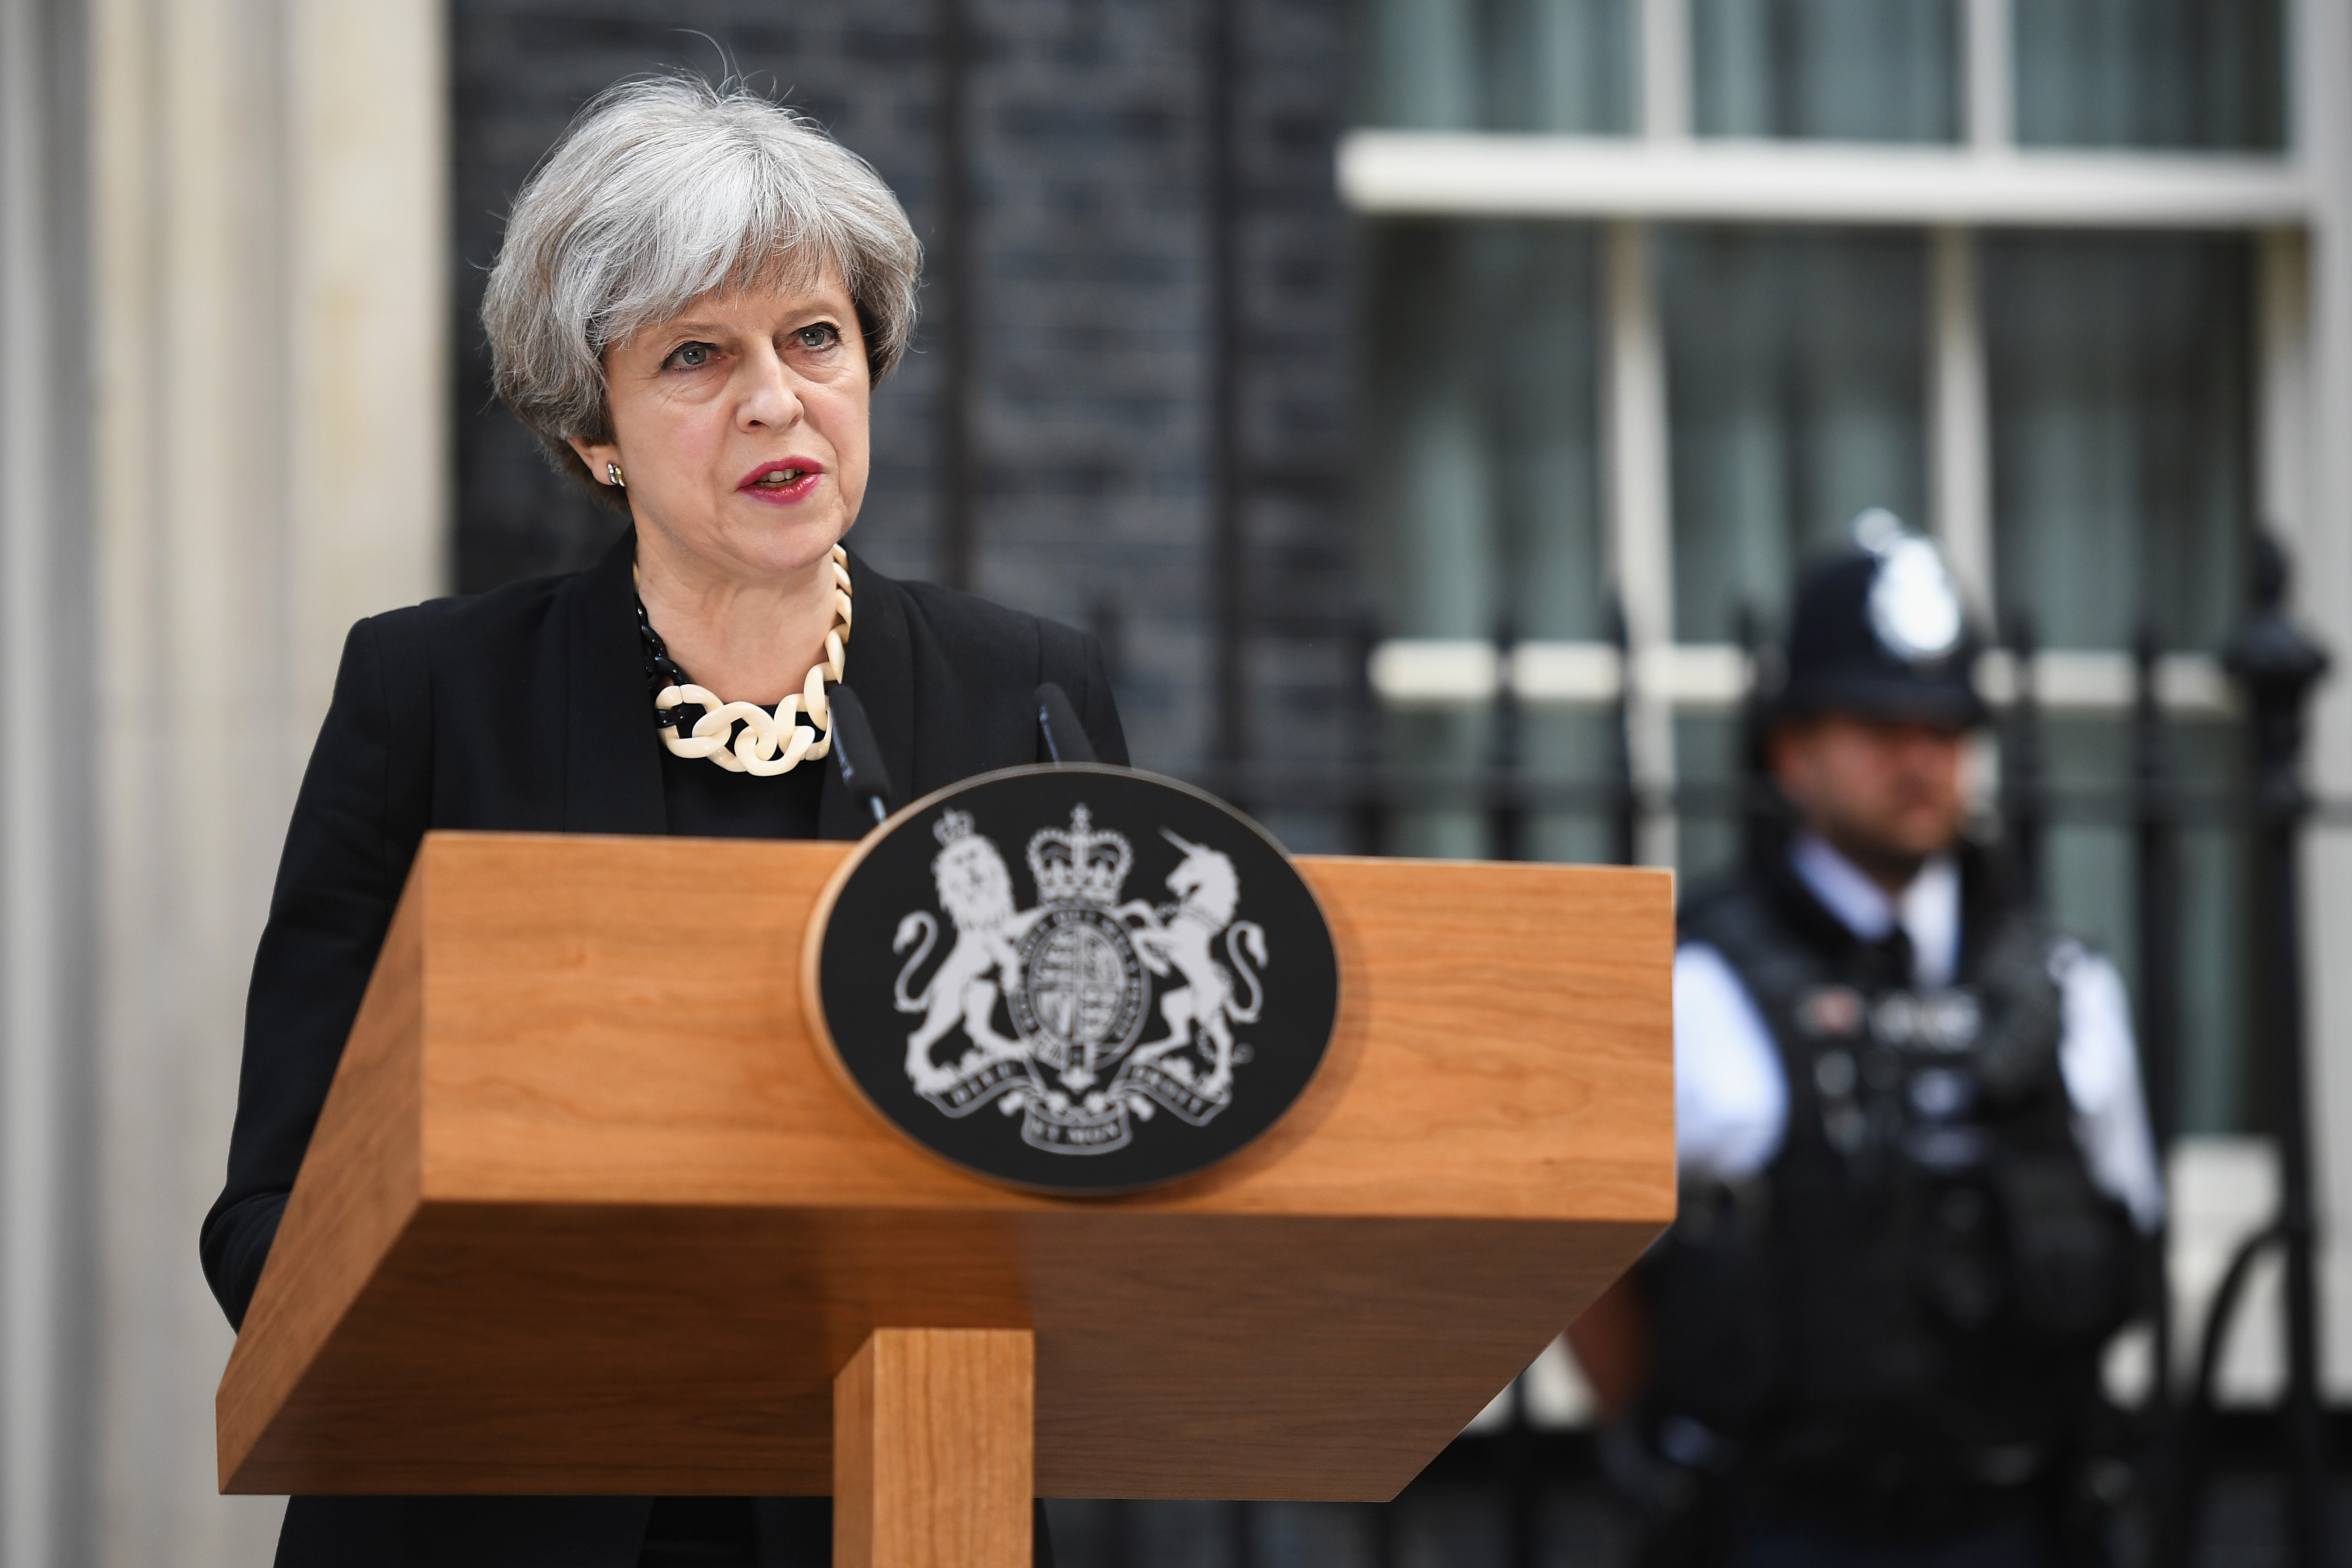 LONDON, ENGLAND - JUNE 04:  Britain's Prime Minister Theresa May addresses the media as she makes a statement, following a COBRA meeting in response to last night's London terror attack, at 10 Downing Street on June 4, 2017 in London, England. Prime Minister Theresa May has left the election campaign trail to hold a meeting of the emergency response committee, Cobra, this morning following a terror attack in central London on Saturday night. 7 people were killed and at least 48 injured in terror attacks on London Bridge and Borough Market. Three attackers were shot dead by armed police.  (Photo by Leon Neal/Getty Images)